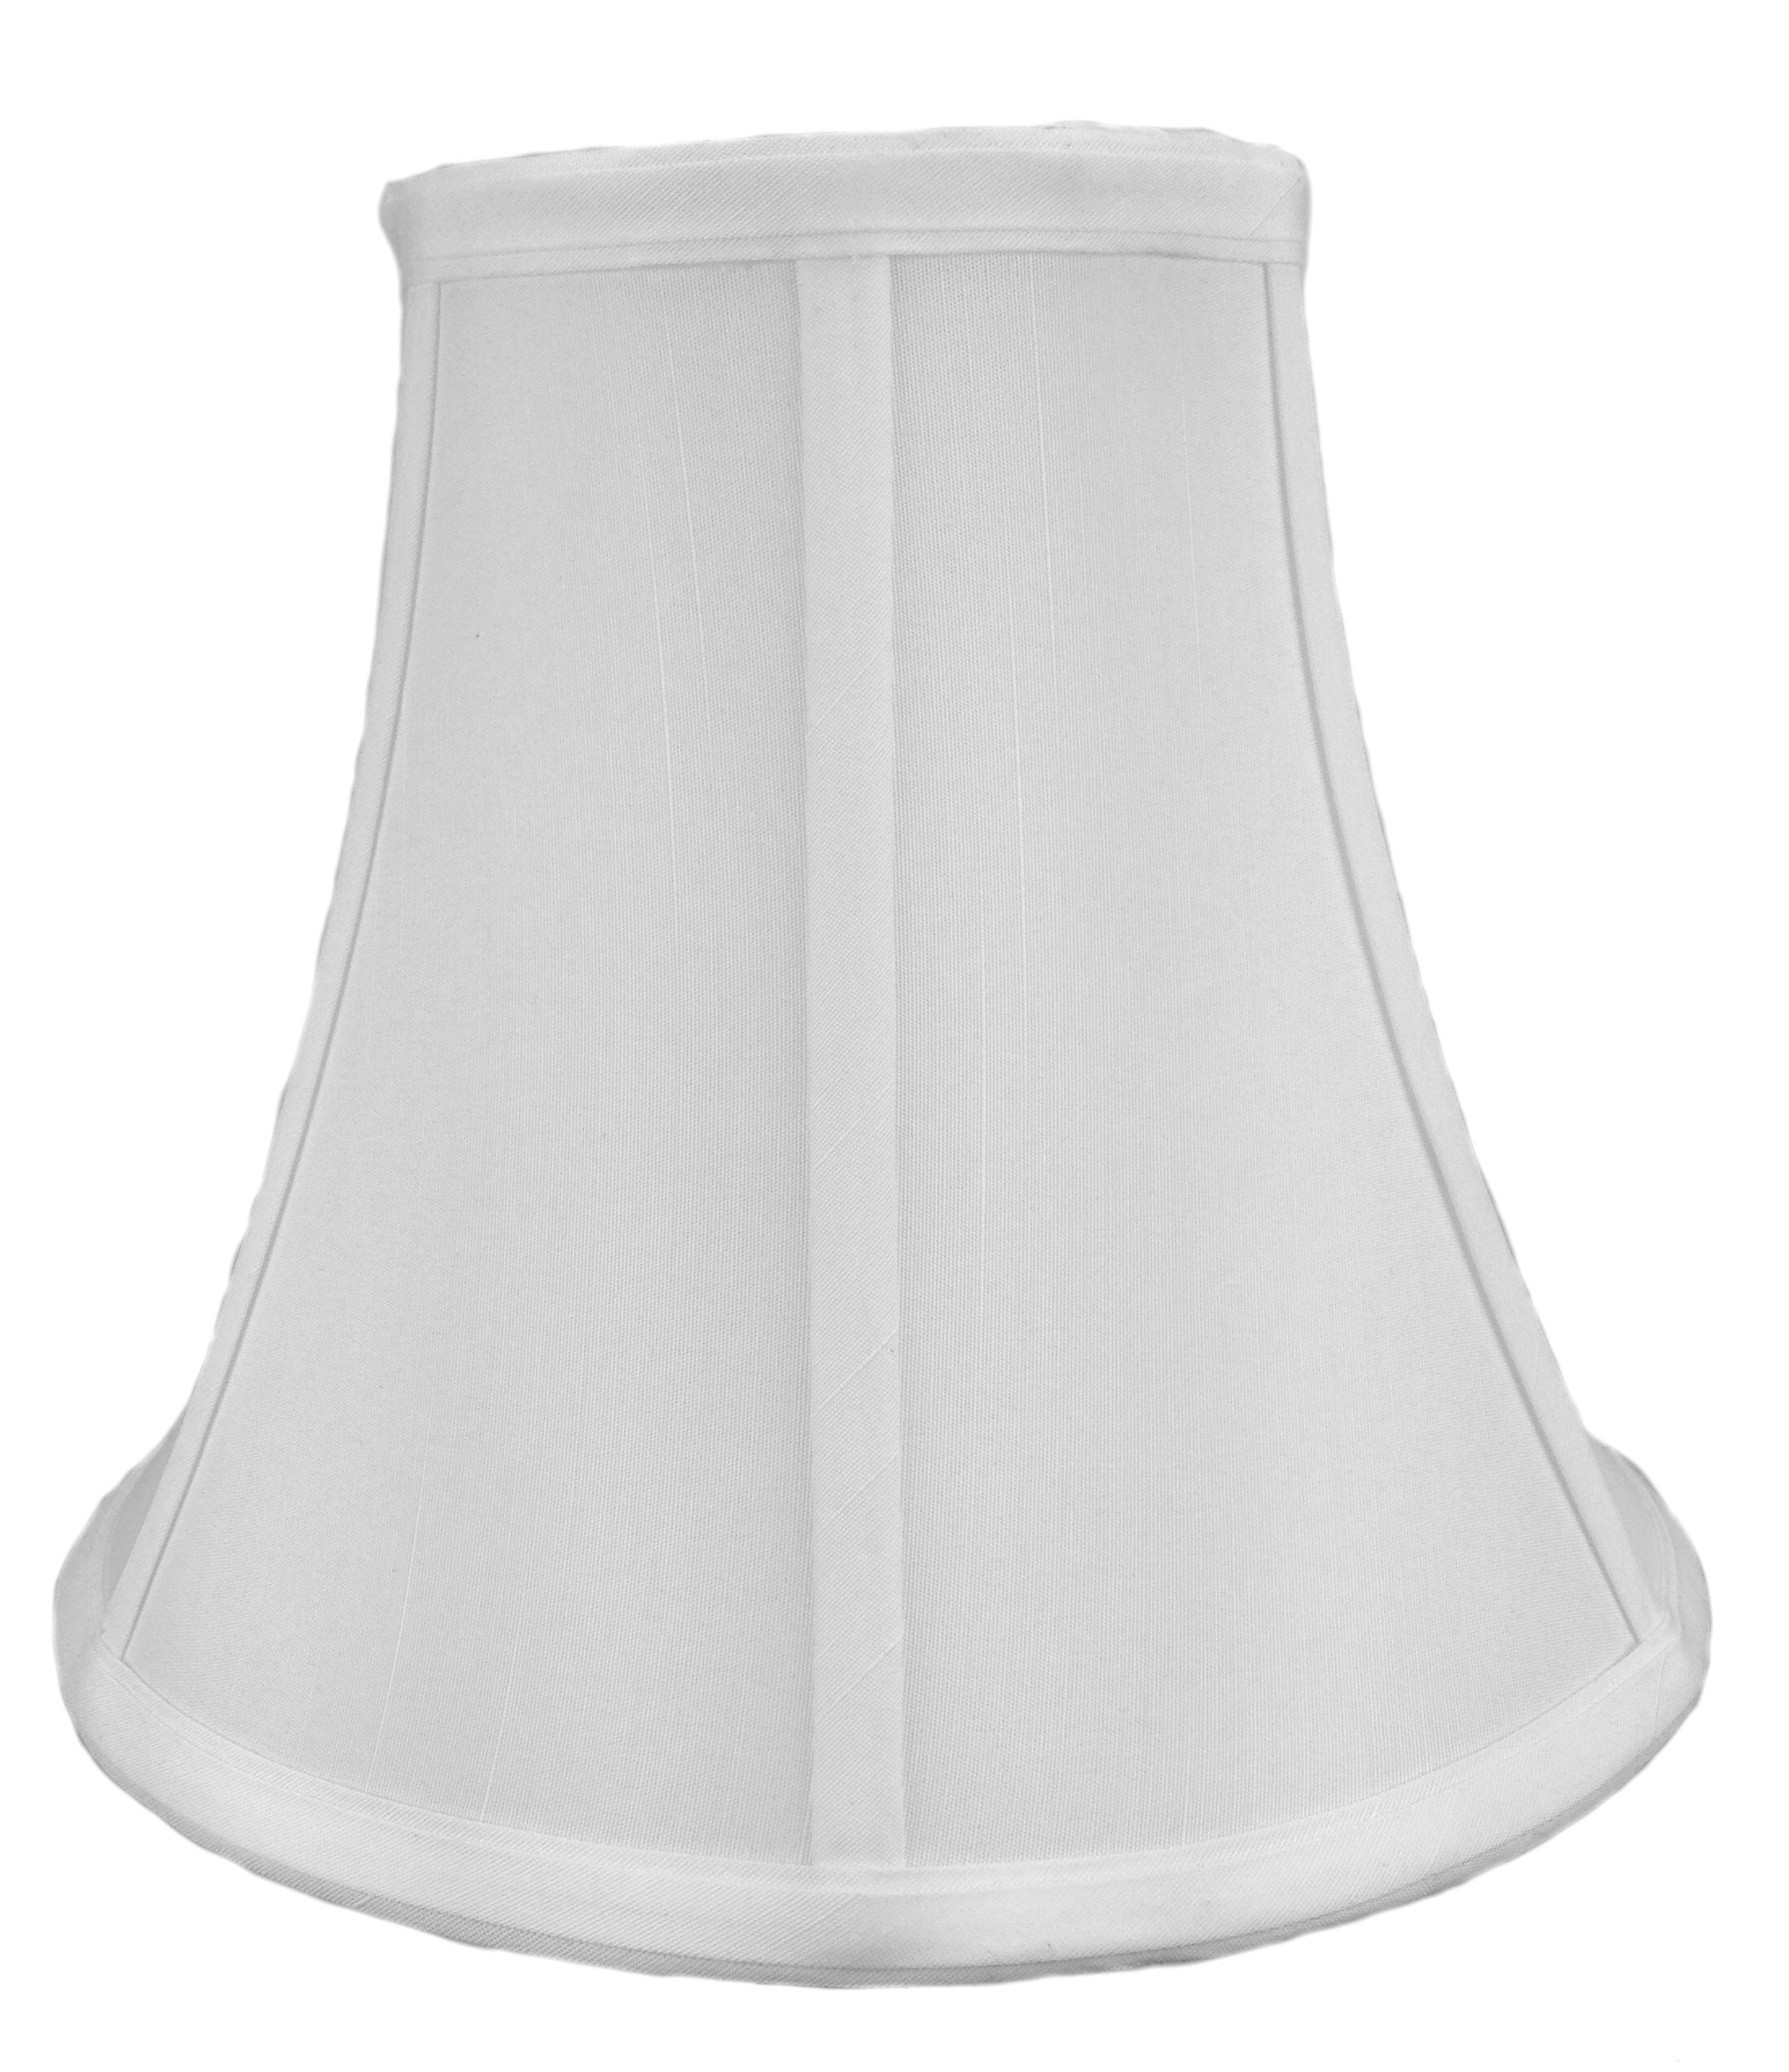 HomeConcept 051008BLWH Bell Shantung Lampshade by Home Concept, 5'' x 10'' x 8'', White